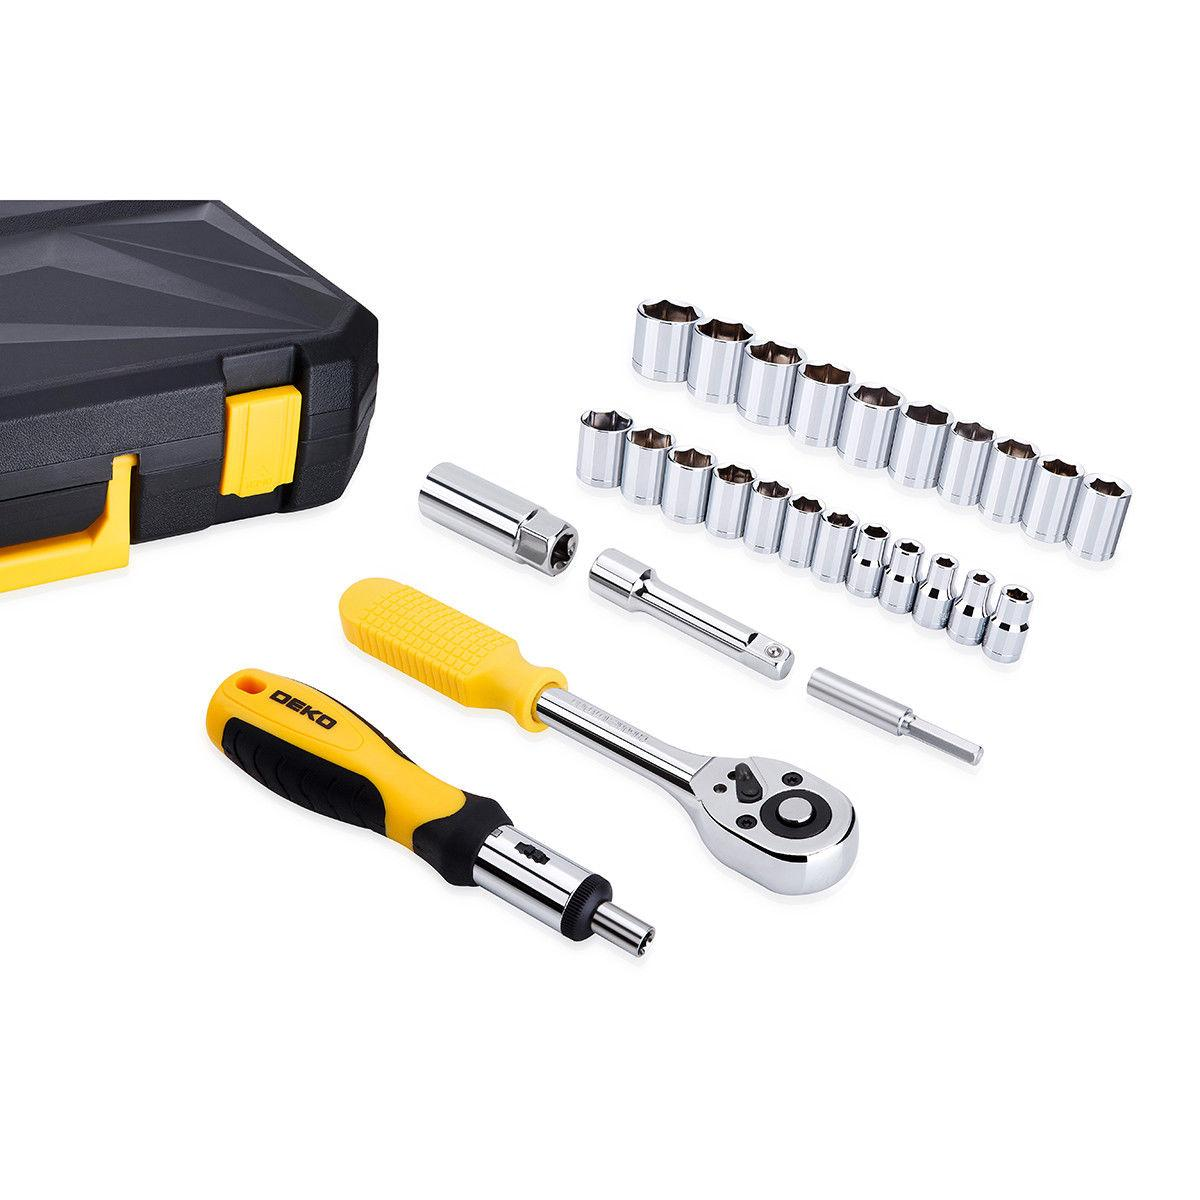 46pcs Sockets DR Tool Kit